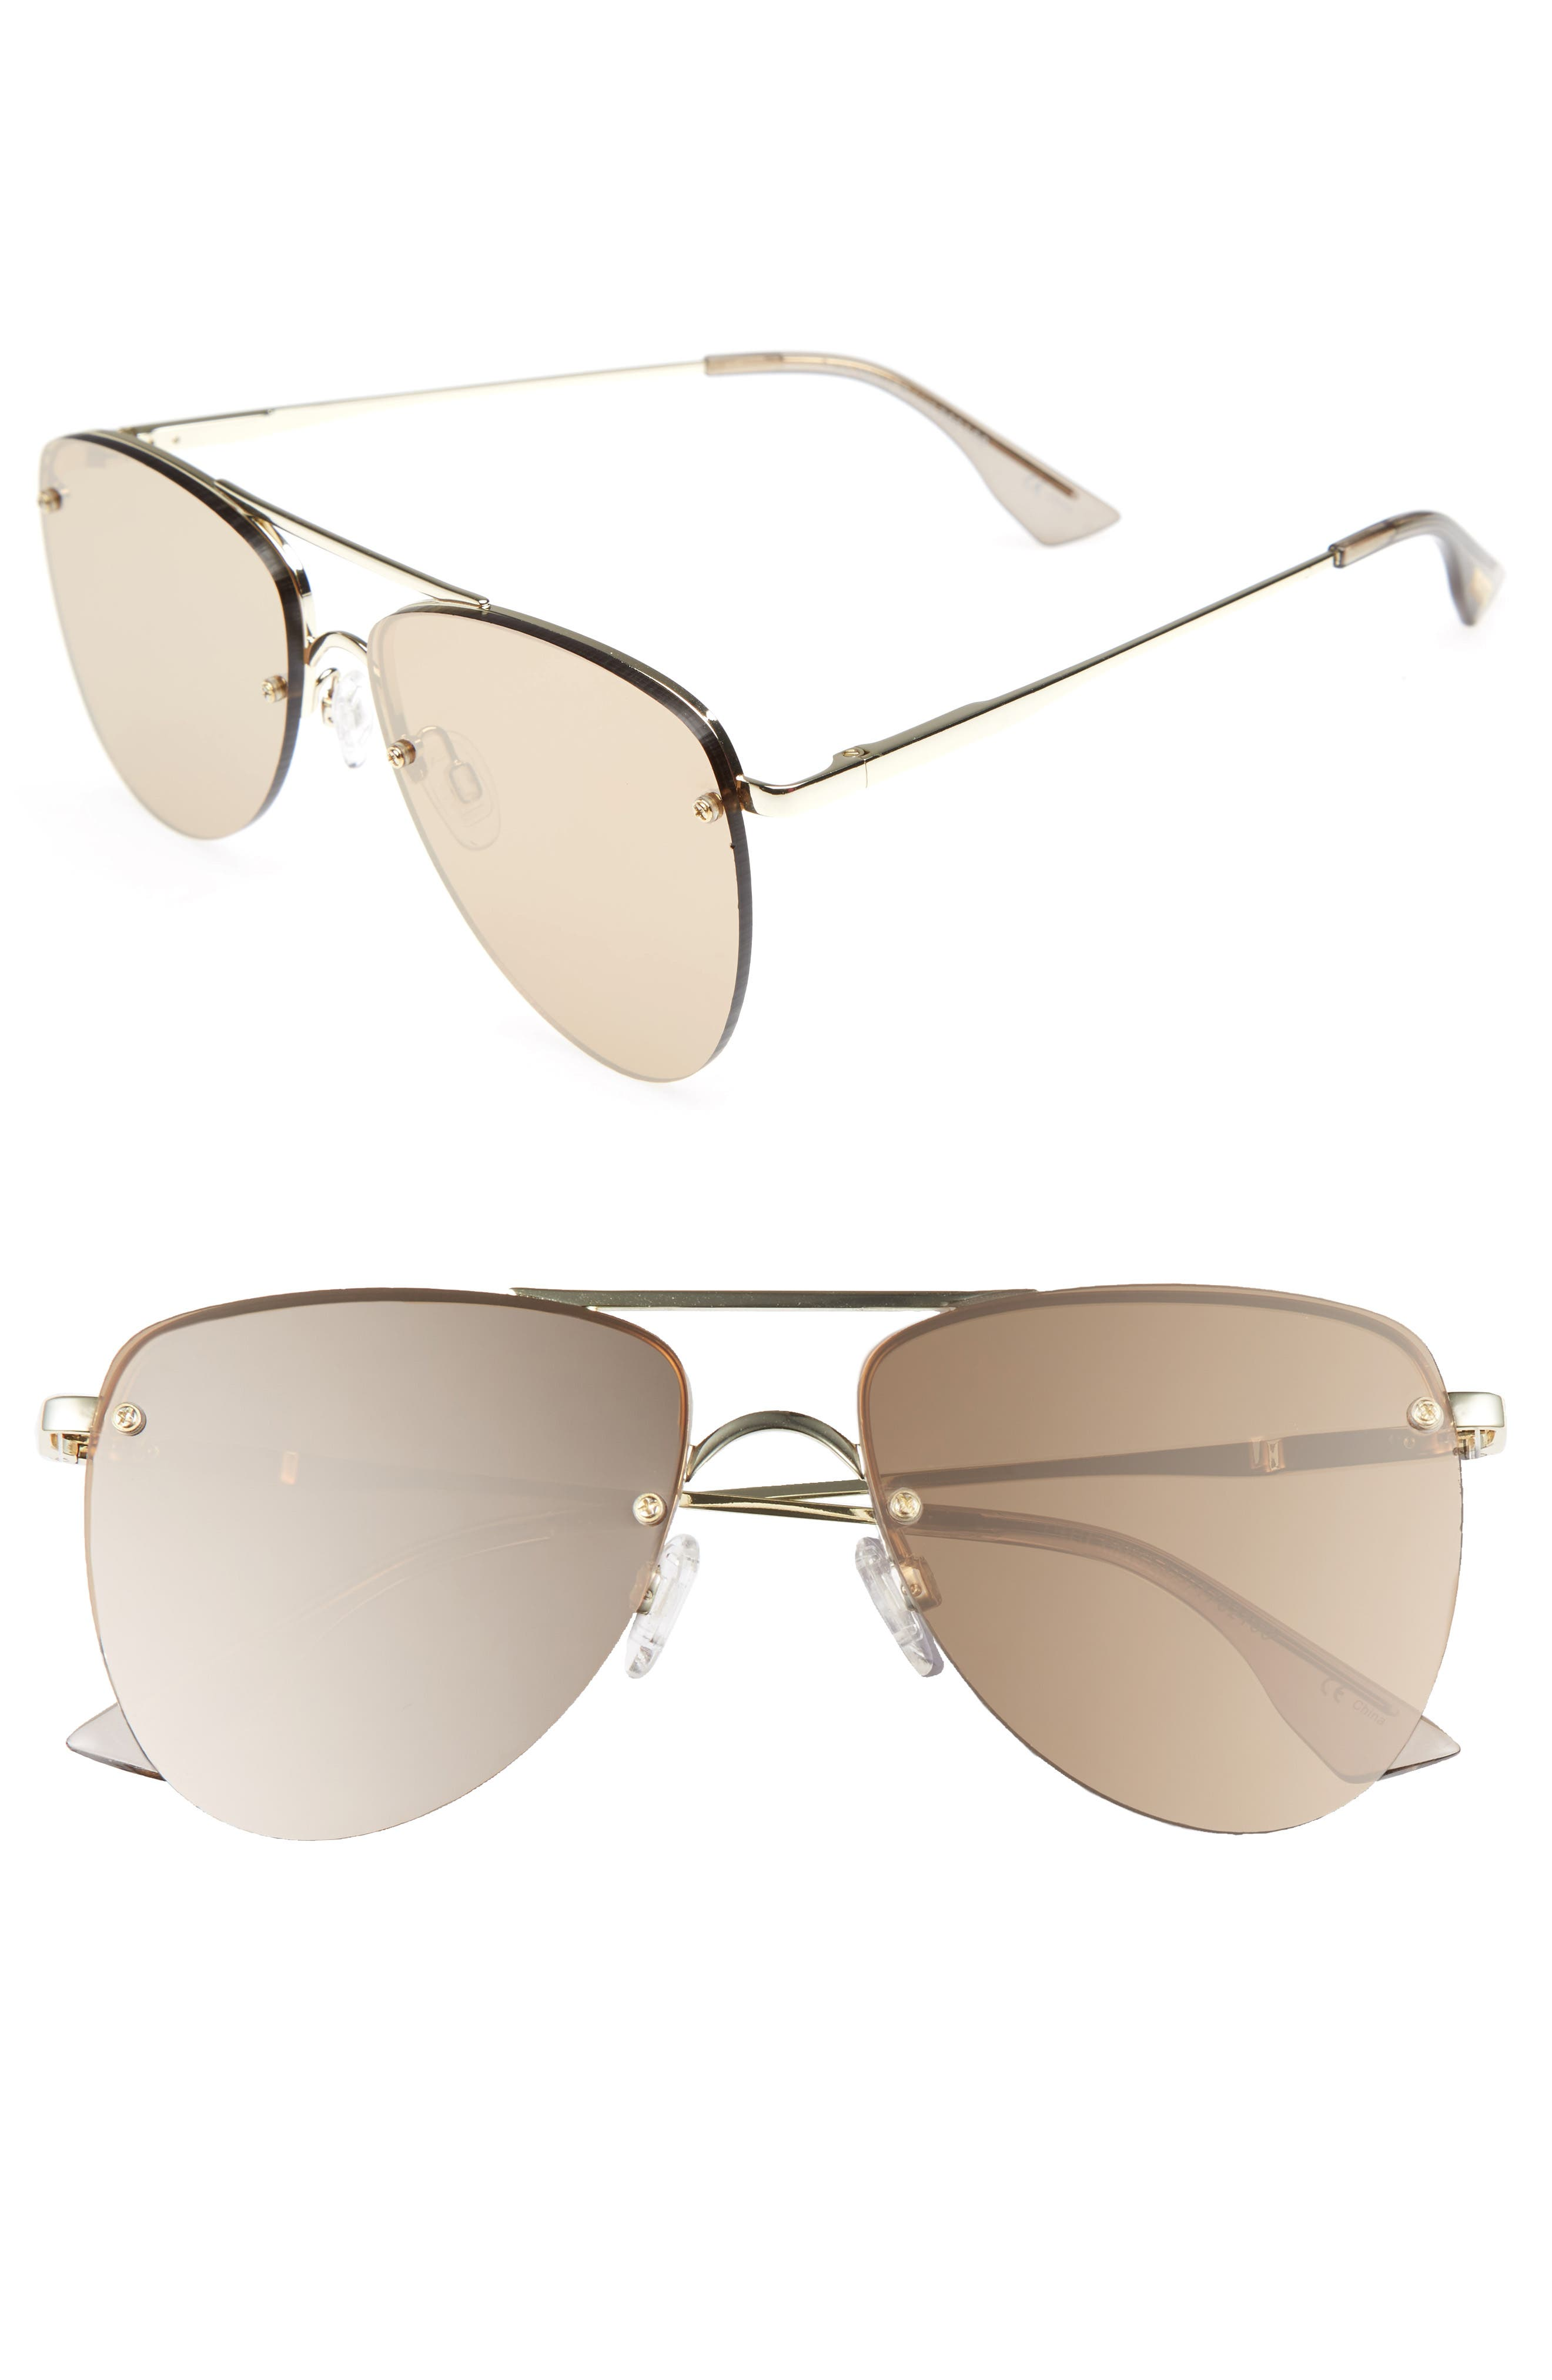 Le Specs The Prince 59mm Mirrored Rimless Aviator Sunglasses